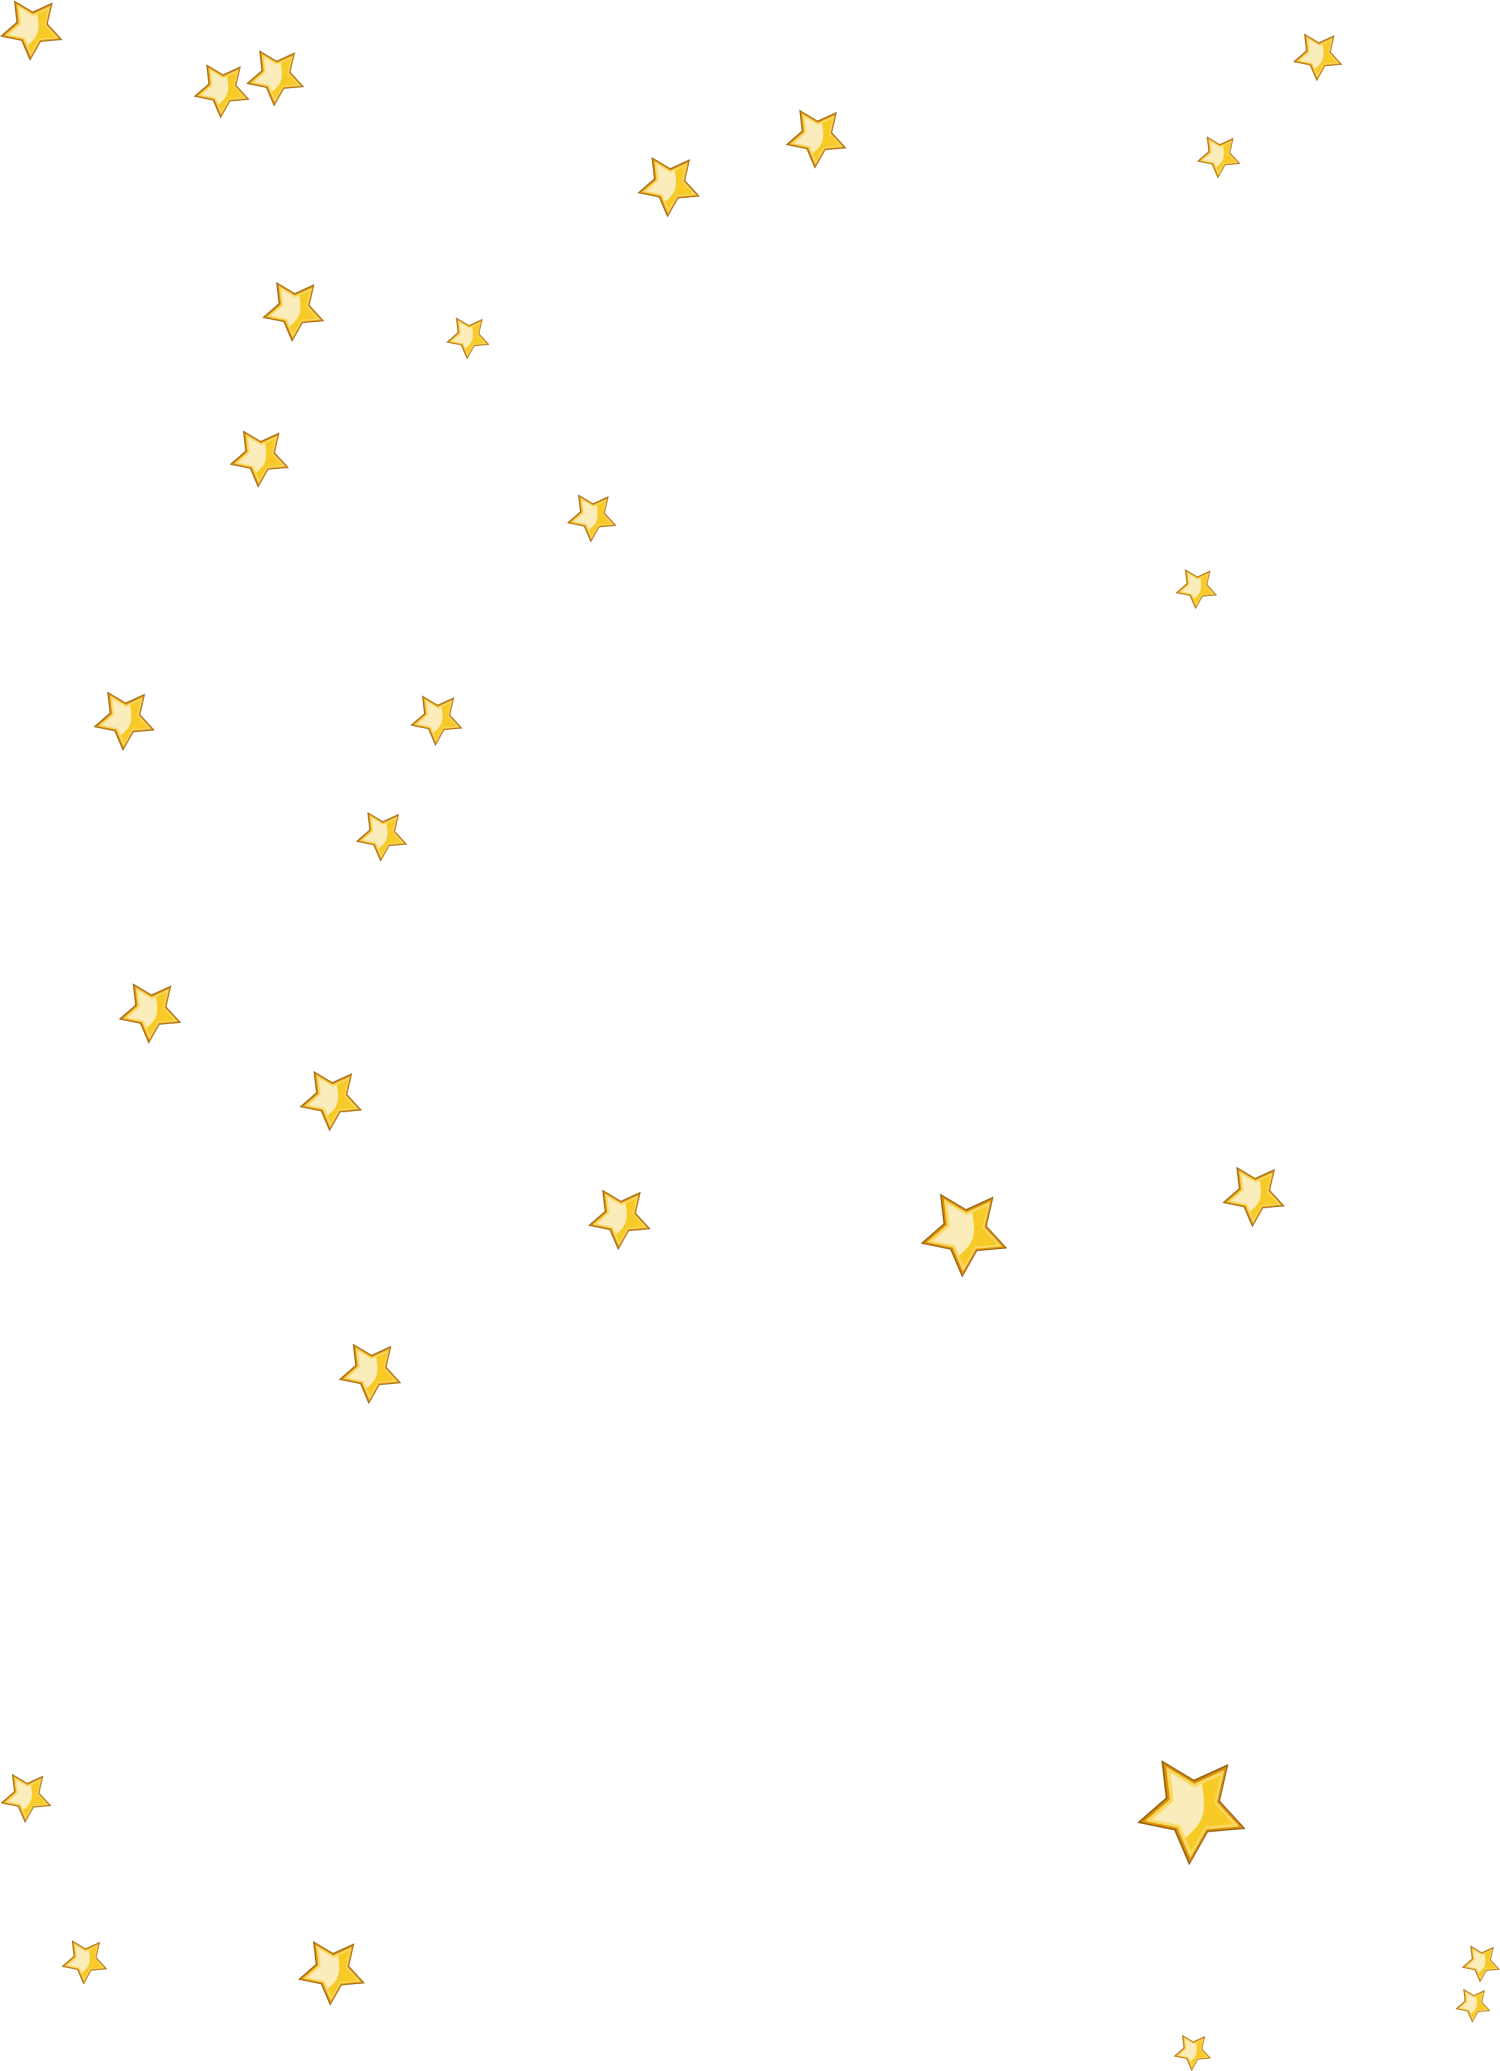 Star PNG Images Transparent Free Download.